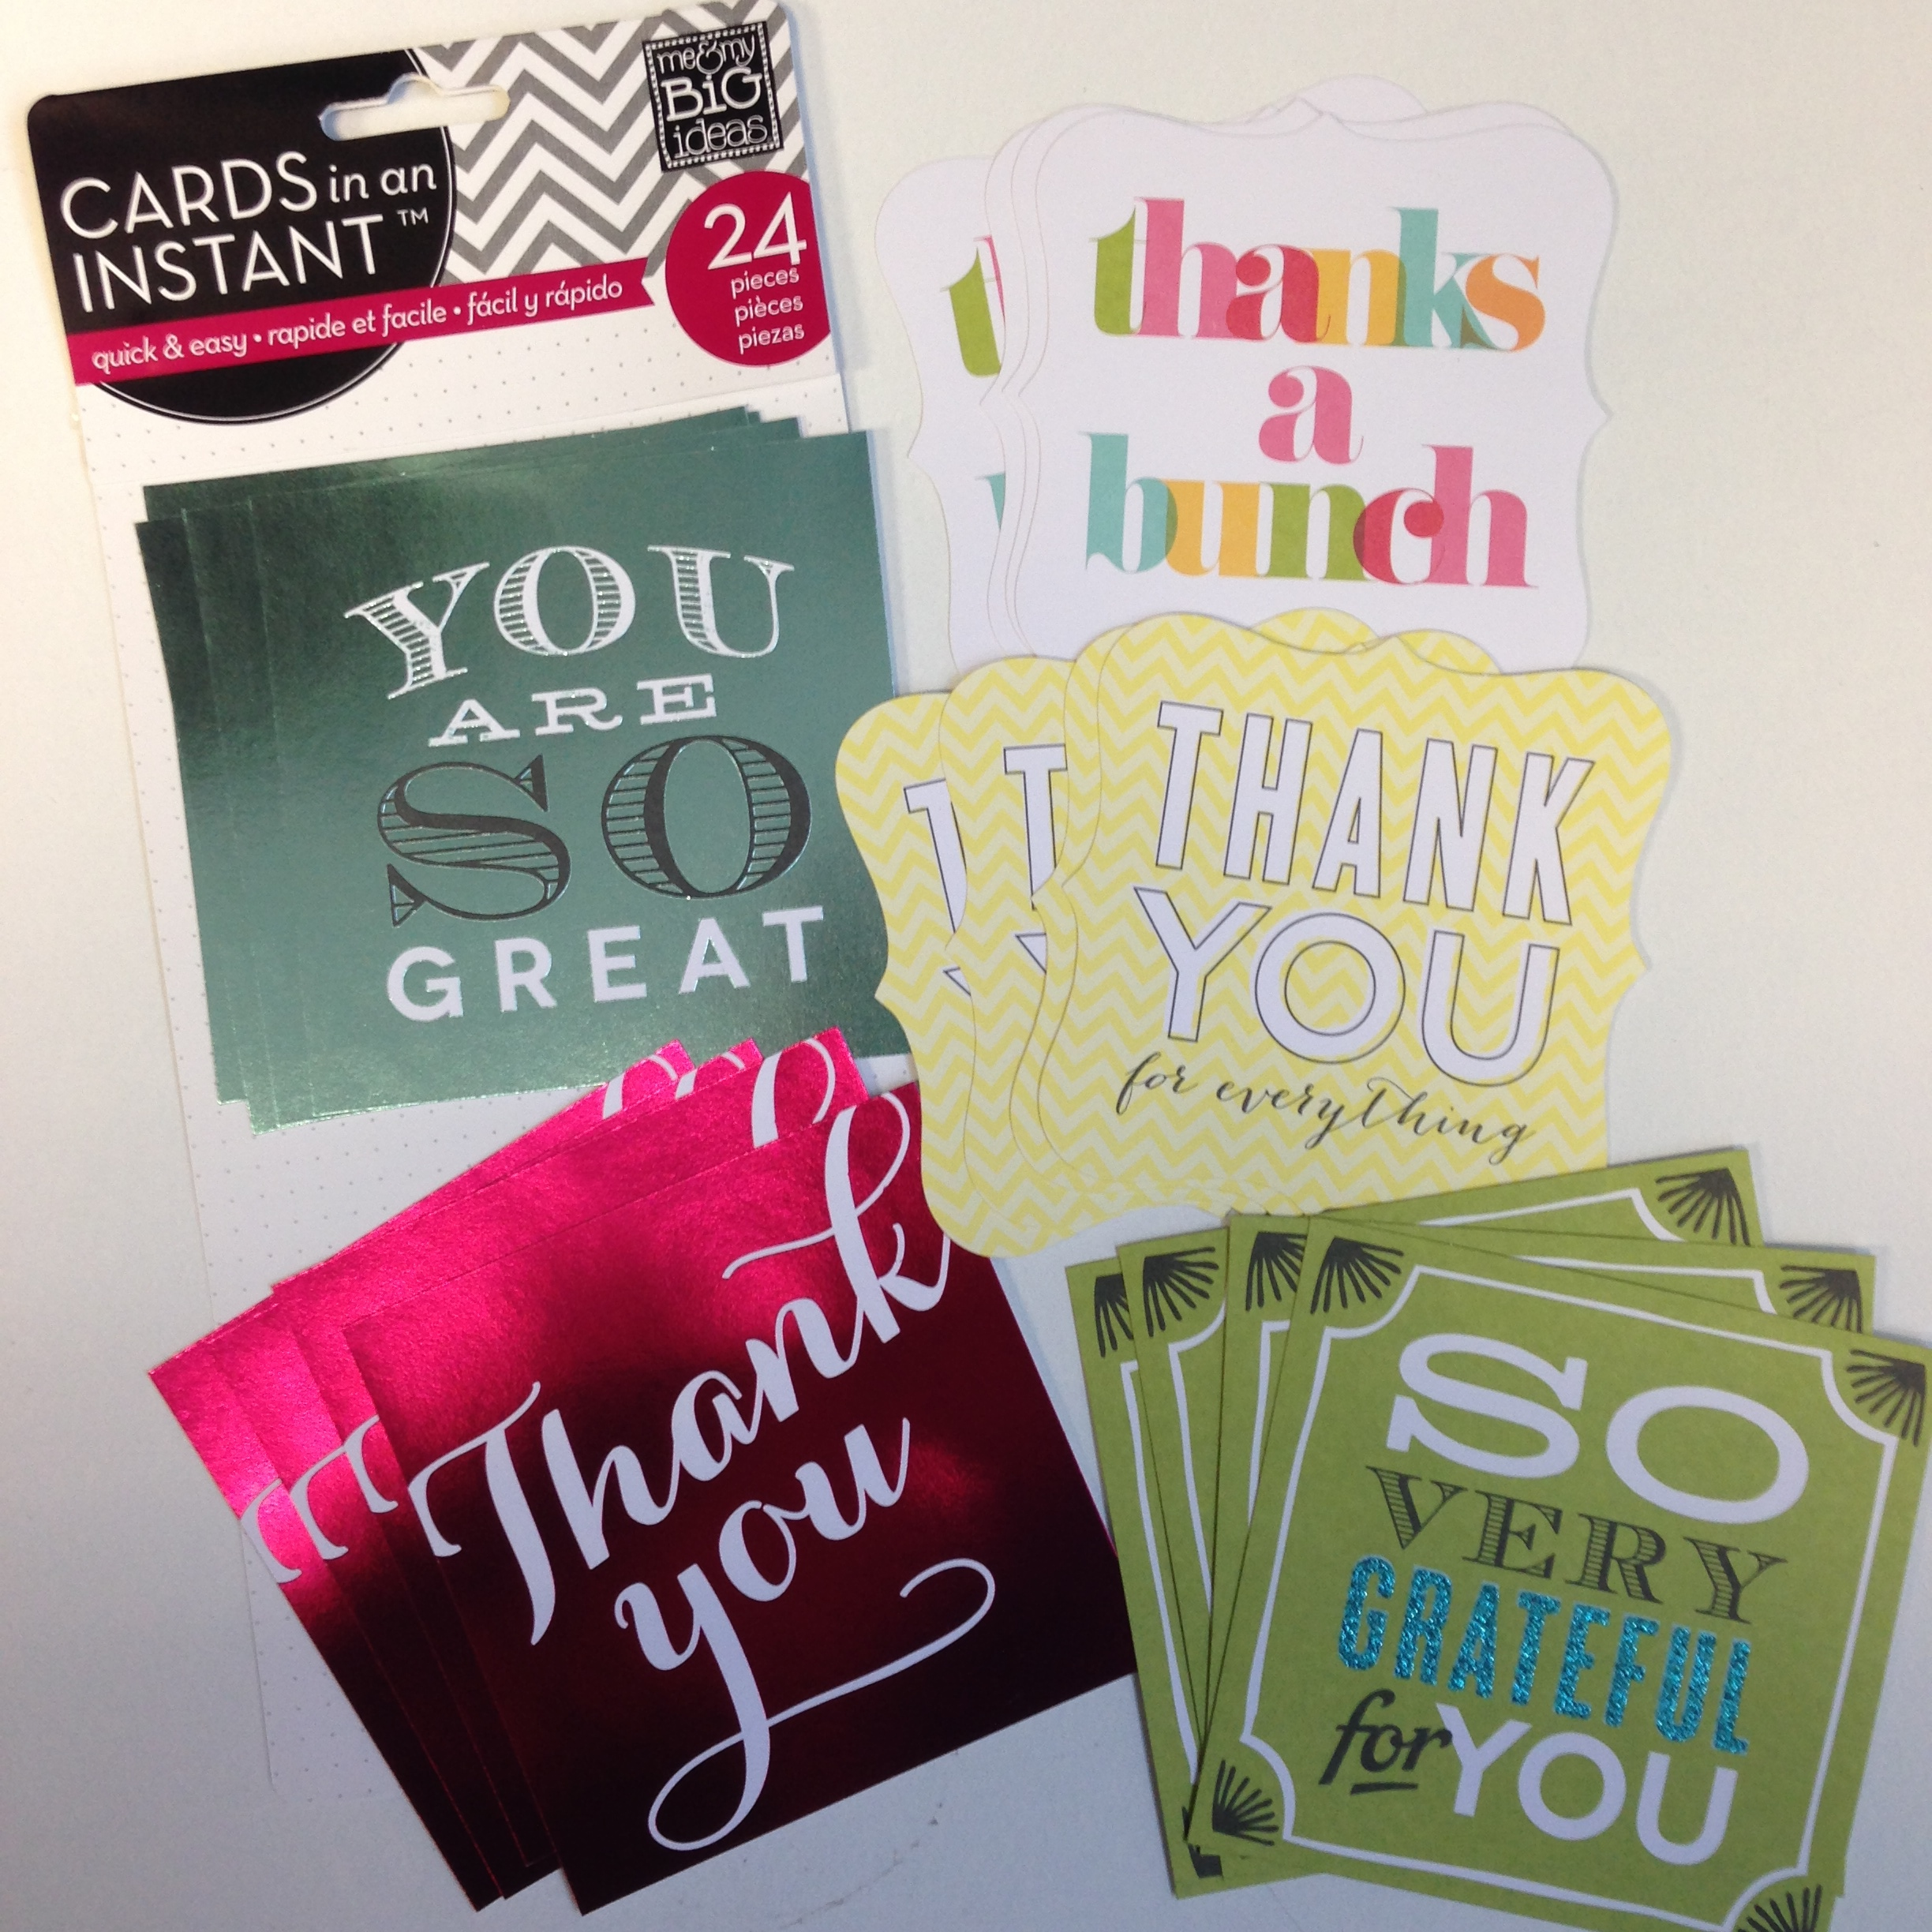 CARDS in an INSTANT - thank you cards, make it so easy to make homemade quick cards.